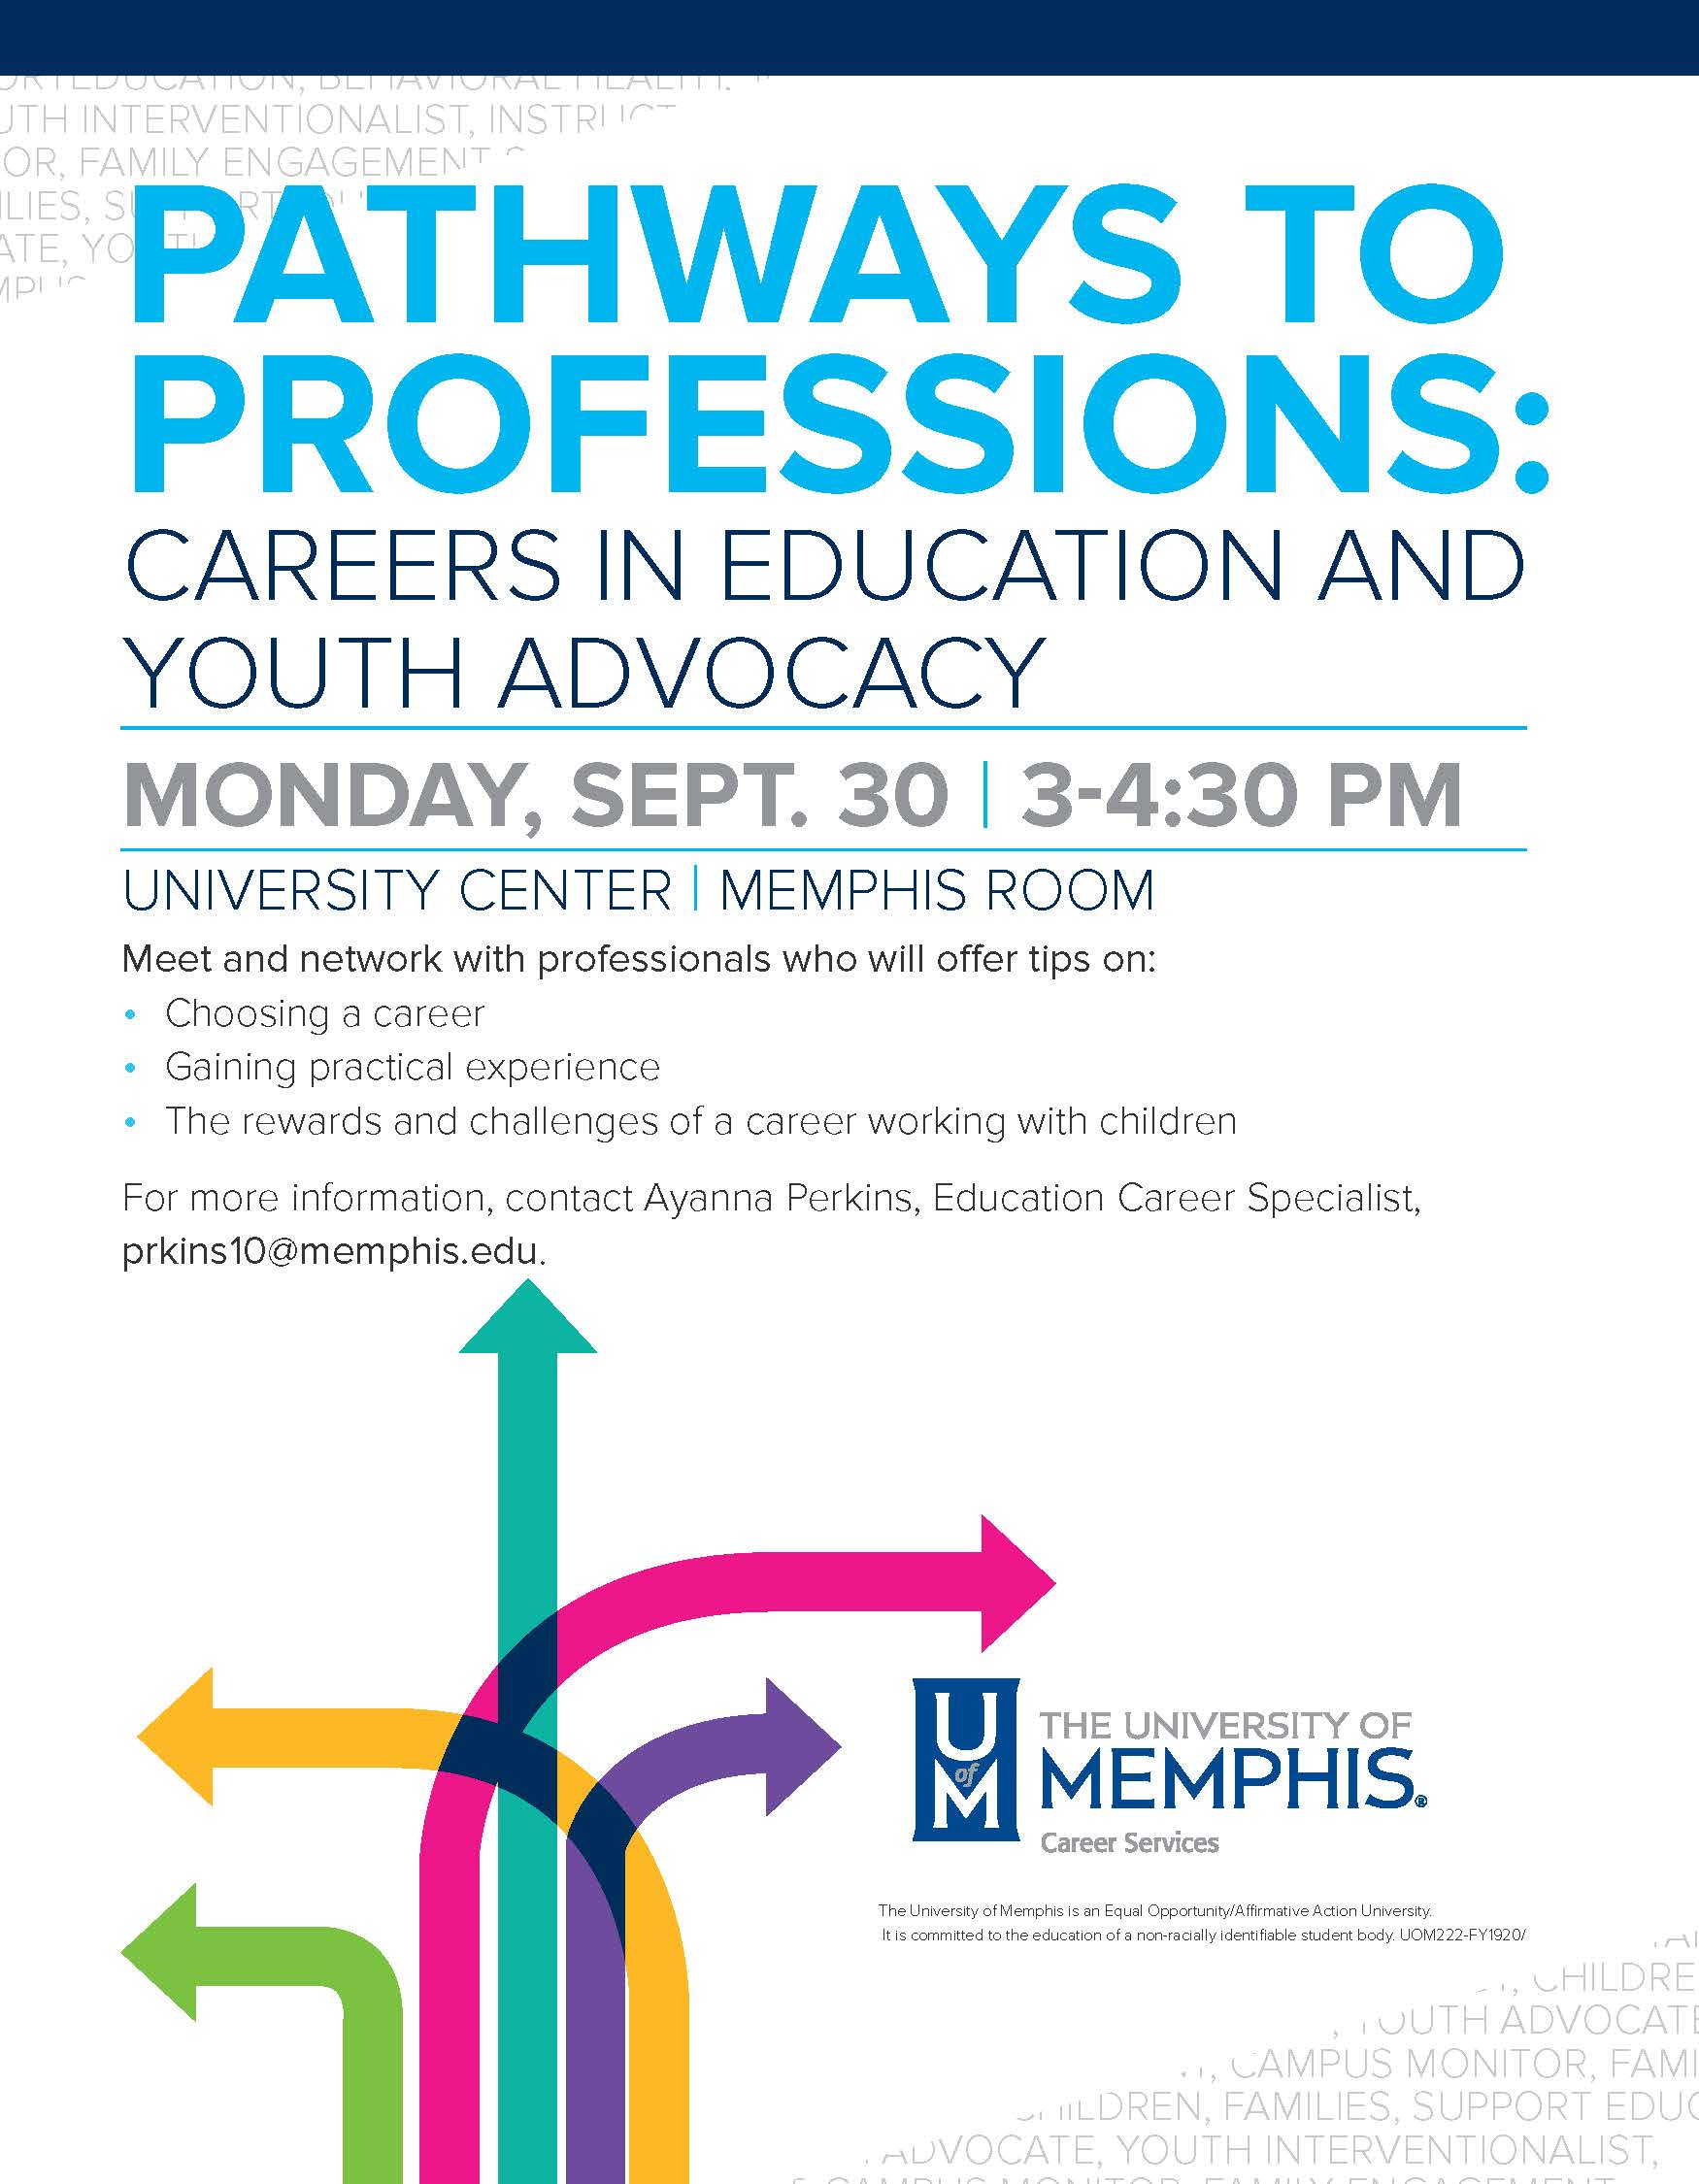 Pathways to Professions: Careers in Education and Youth Advocacy. Monday Sept 30, 3-4:30pm. University Center Memphis Room. Meet and network with professionals who will offer tips on Choosing a career, Gaining practical experience, and the rewards and challenges of a career working with children